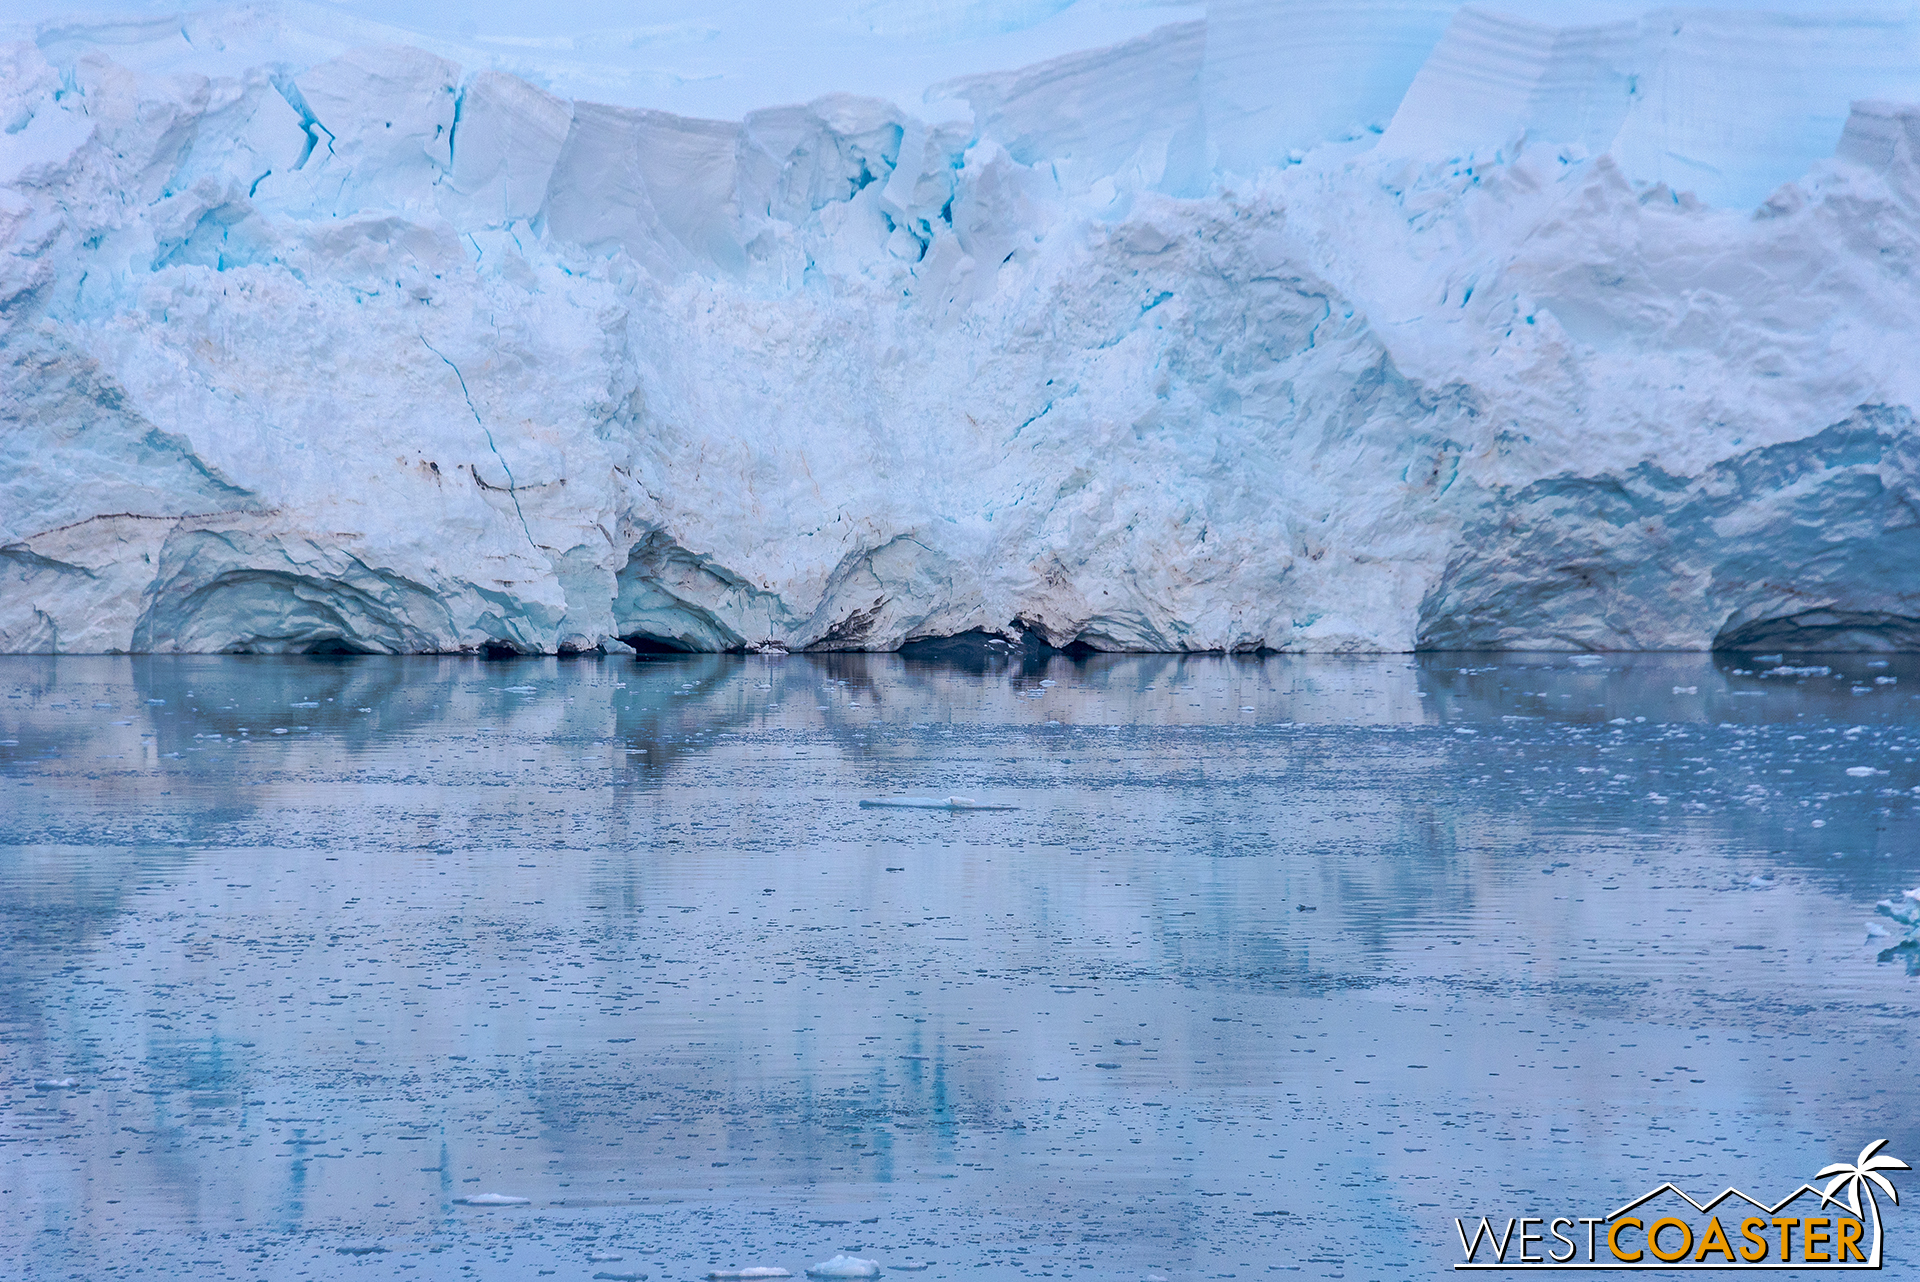 Reflections at the edge of the ice and water.